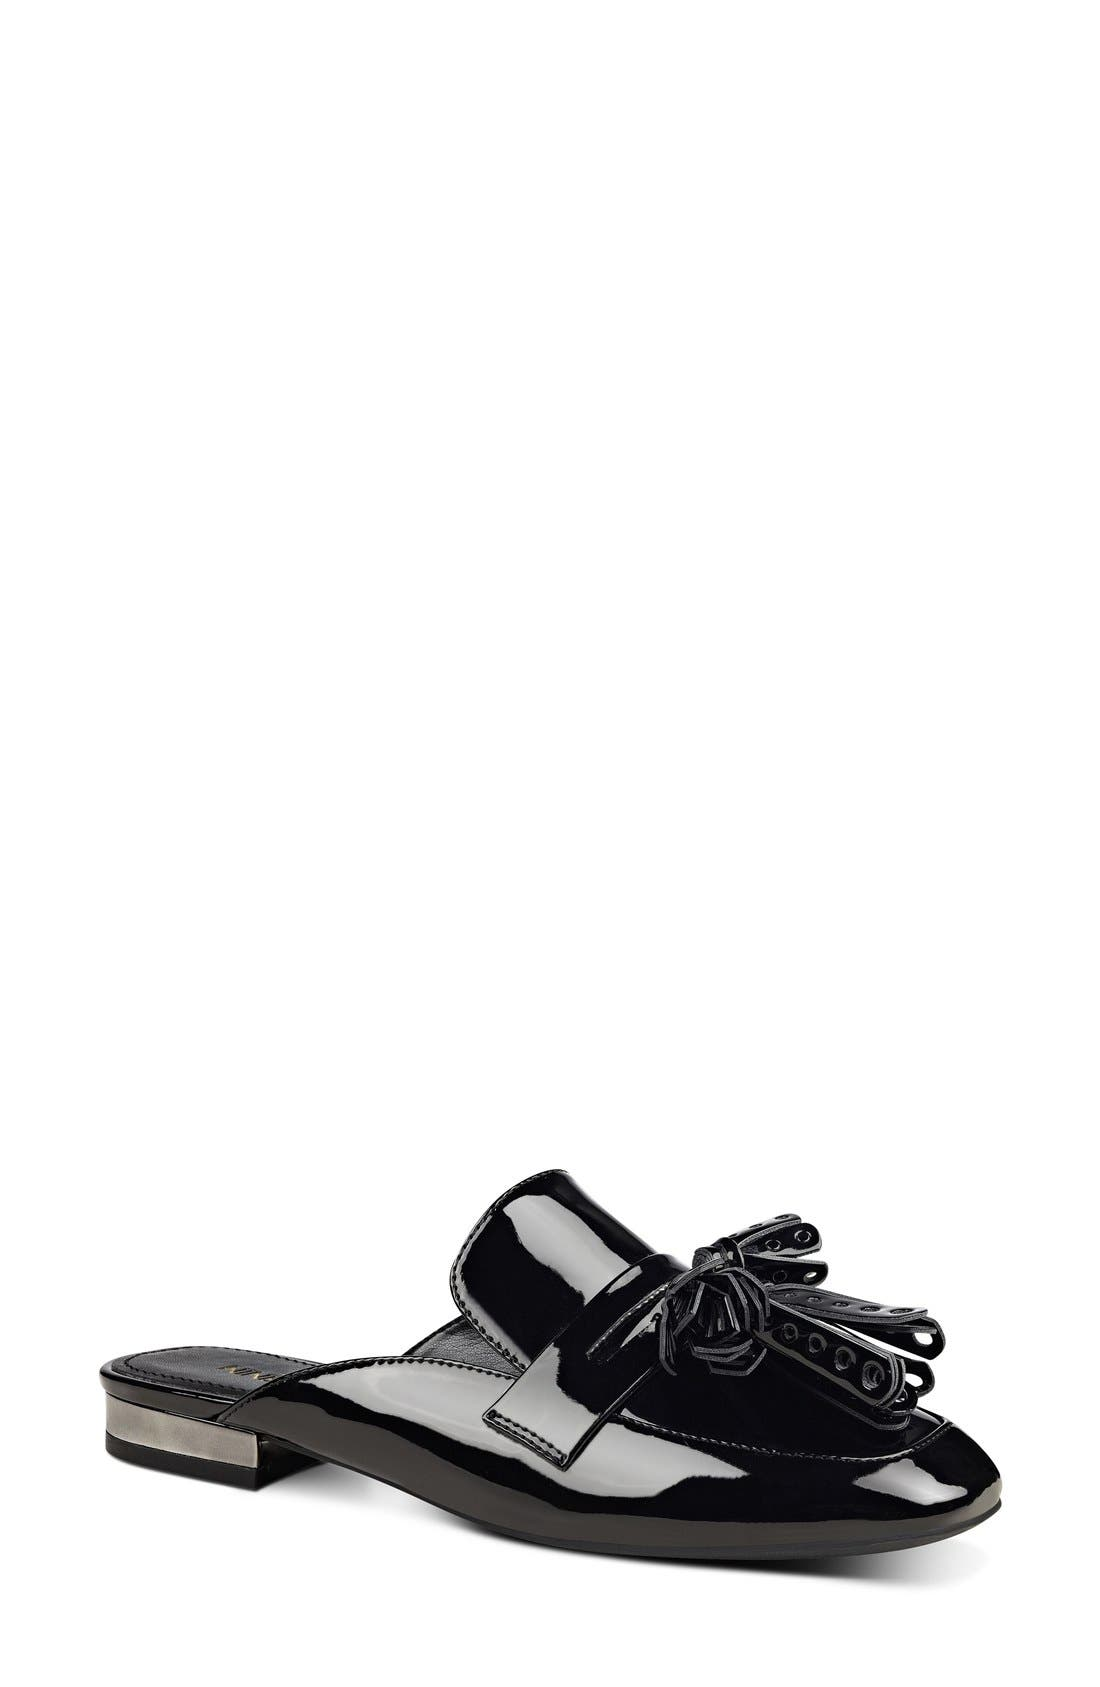 Alternate Image 1 Selected - Nine West 'Xenisa' Flat Loafer Mule (Women)